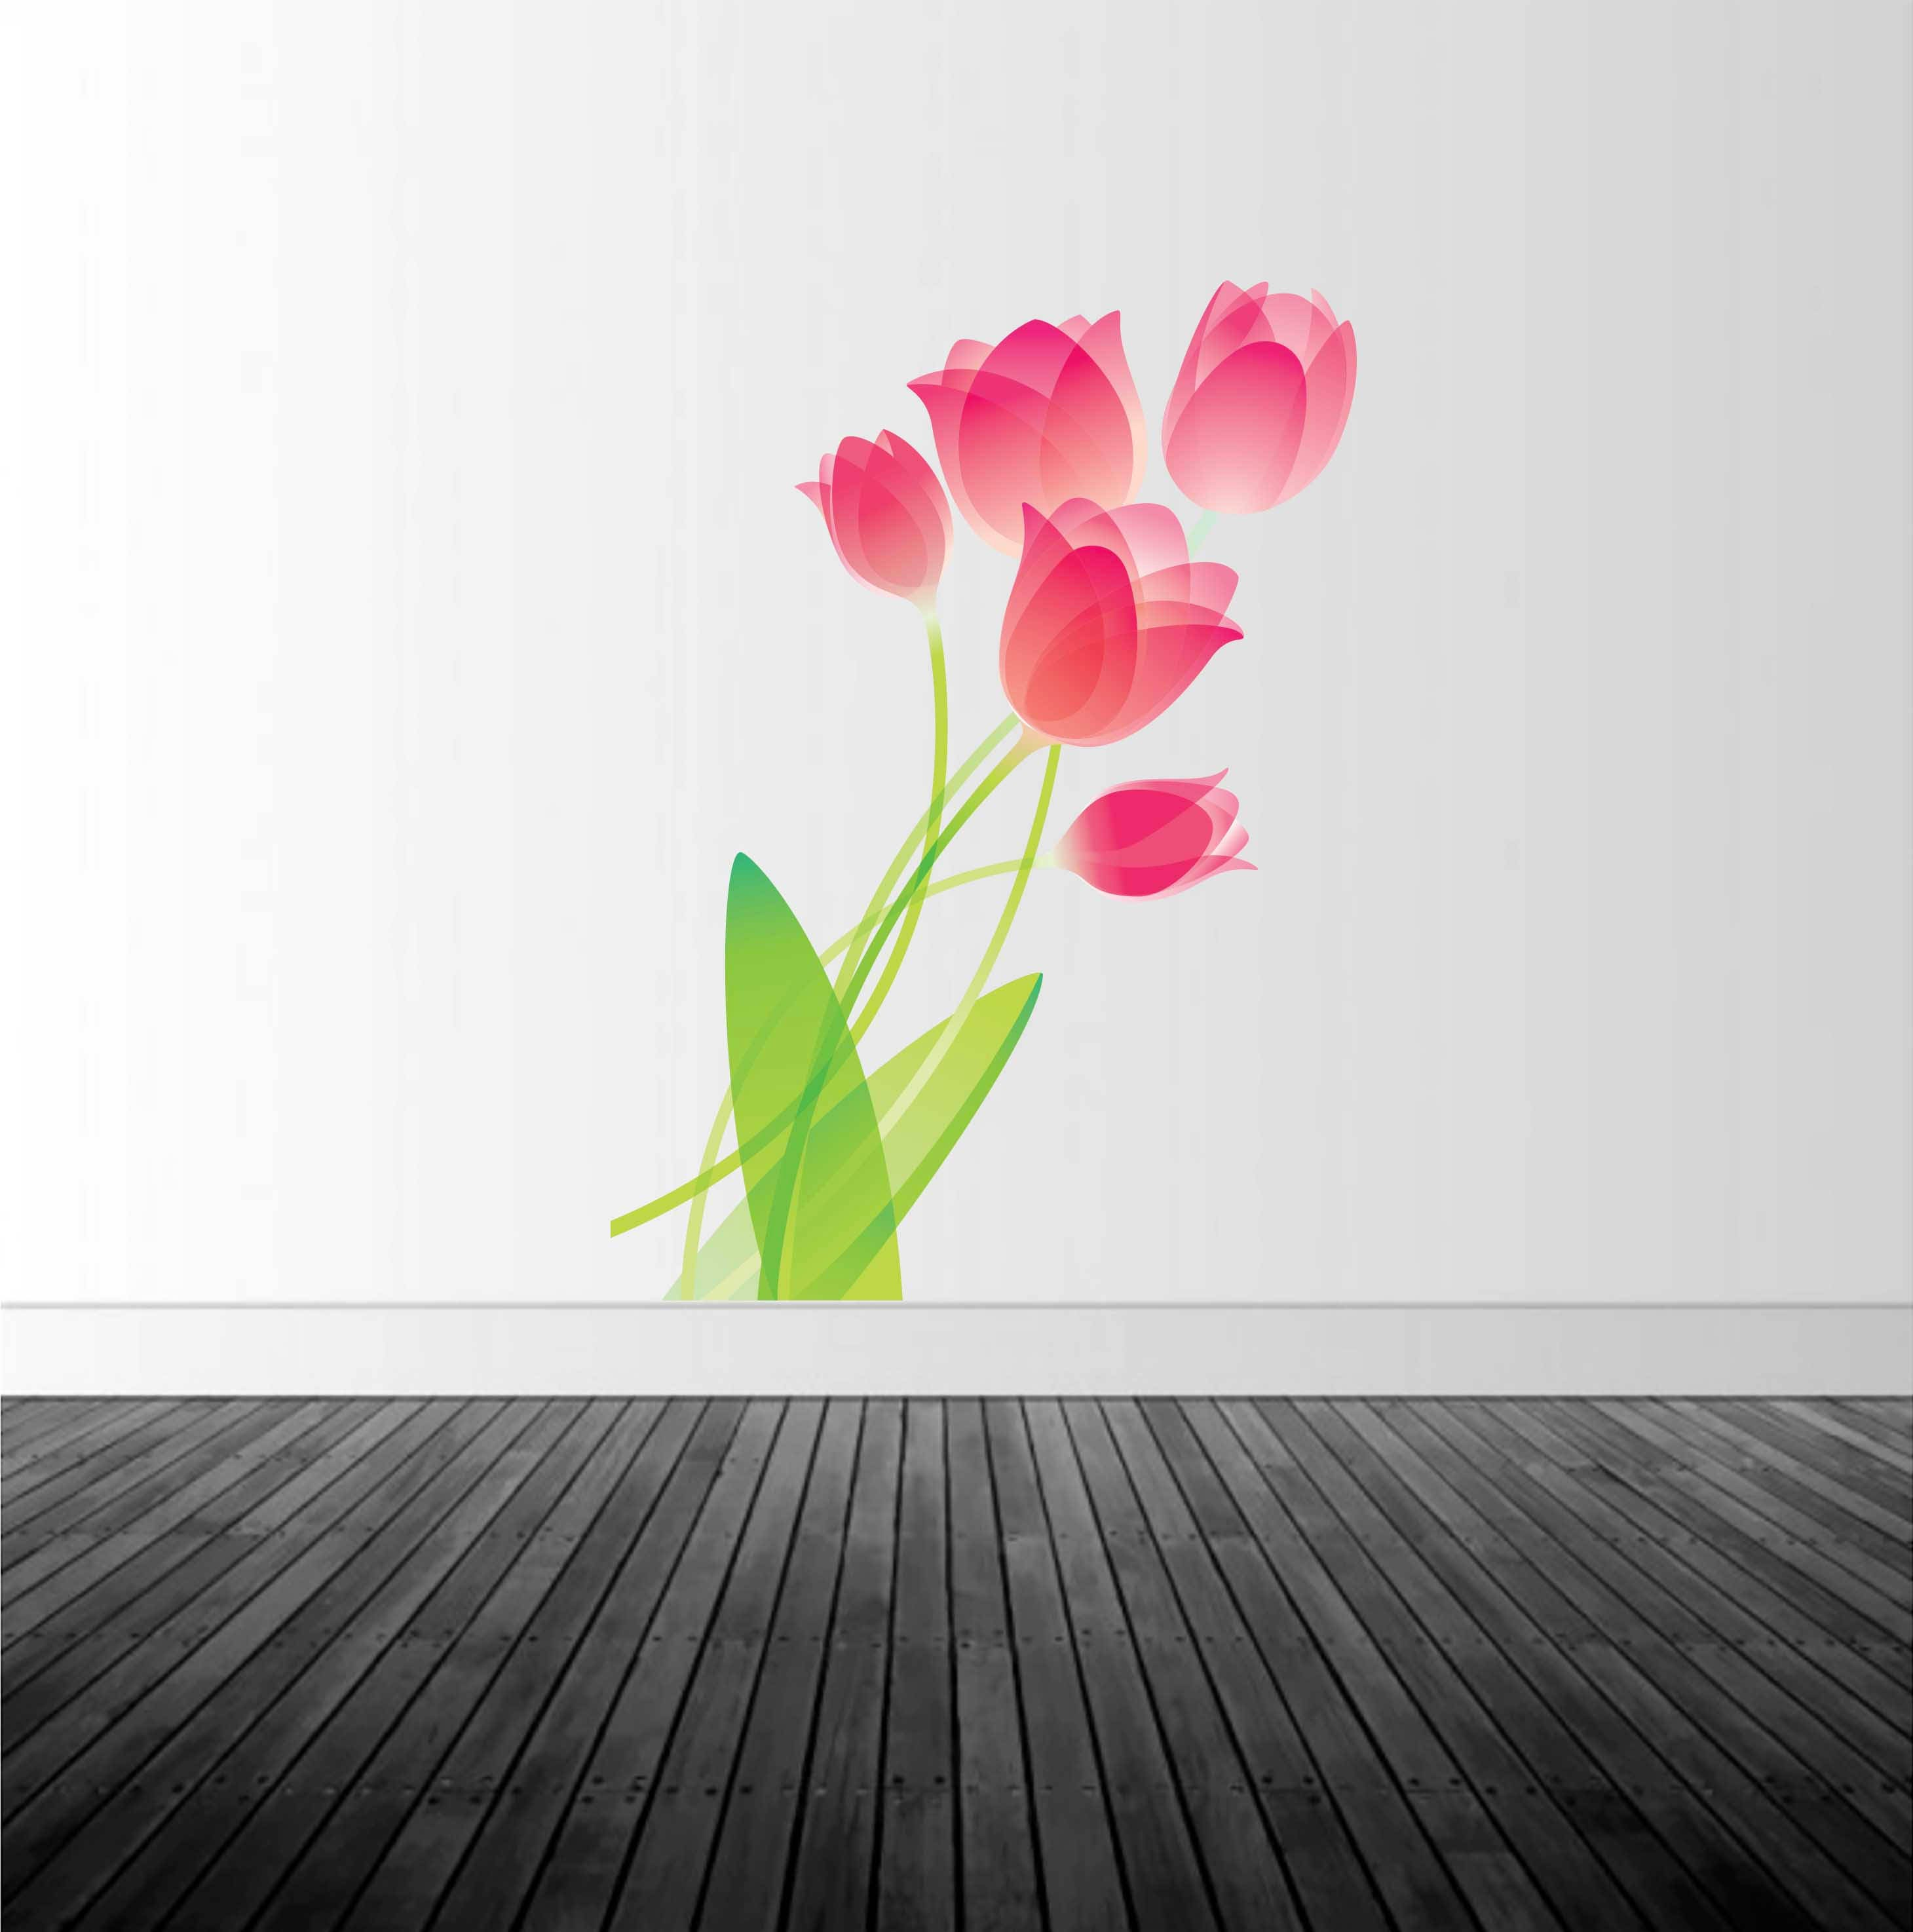 gallery photo gallery photo gallery photo & Tulip Wall Decal Floral Wall Decal Flower Decal Vinyl Wall Decal ...